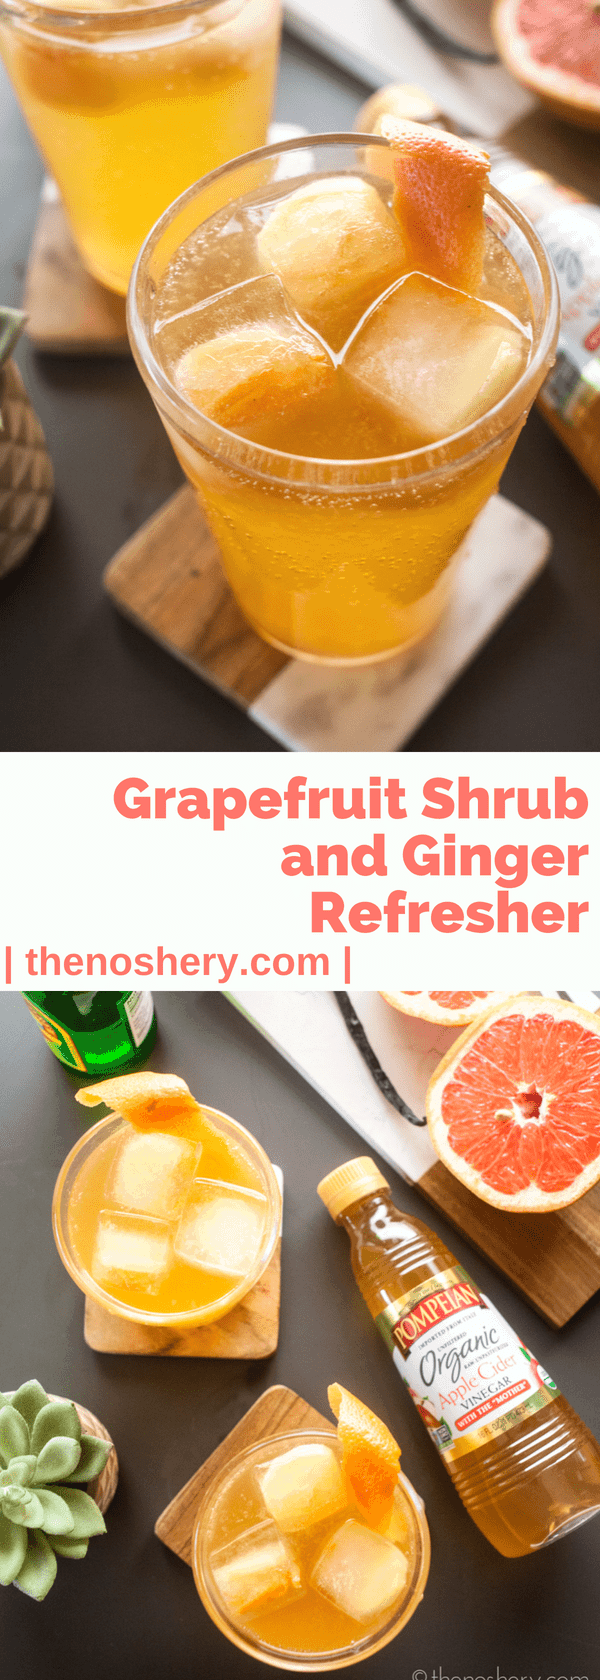 Grapefruit Shrub and Ginger Refresher | A grapefruit shrub made with apple cider vinegar is a great source of healthy bacteria, antioxidants, and vitamin C. Mix with ginger beer over ice and you have a perfect summer refresher. | The Noshery